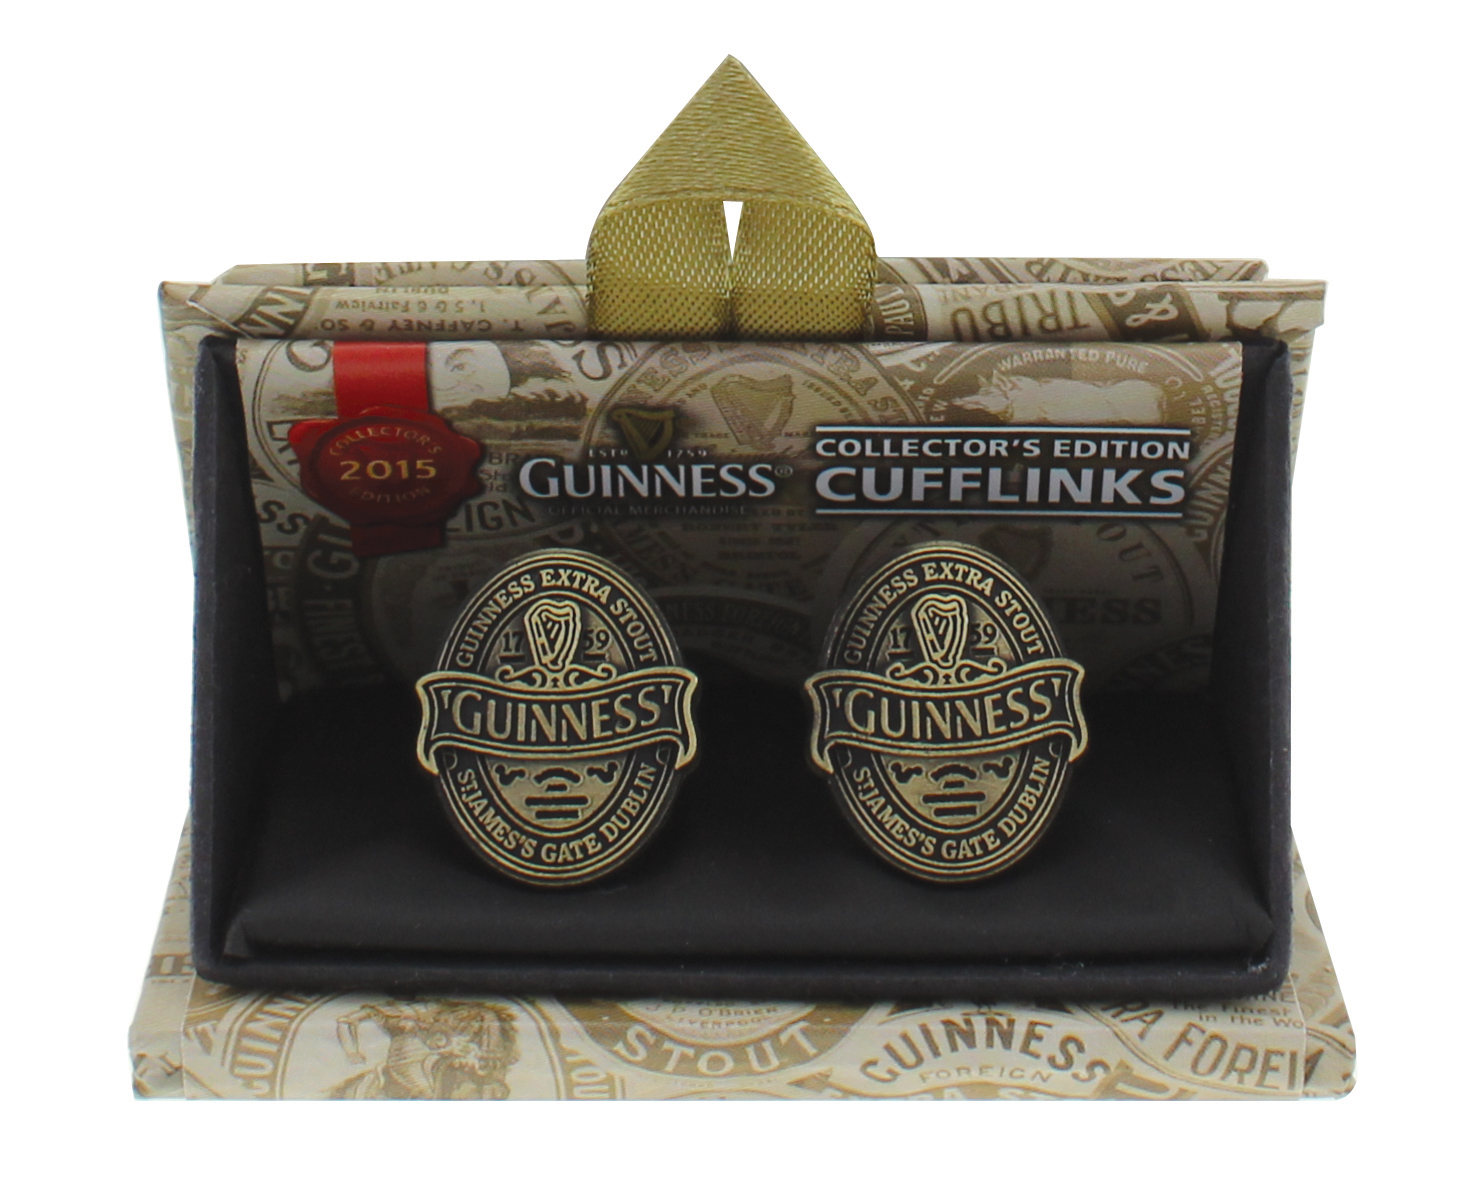 Guinness 2015 Collectors Cuff Links